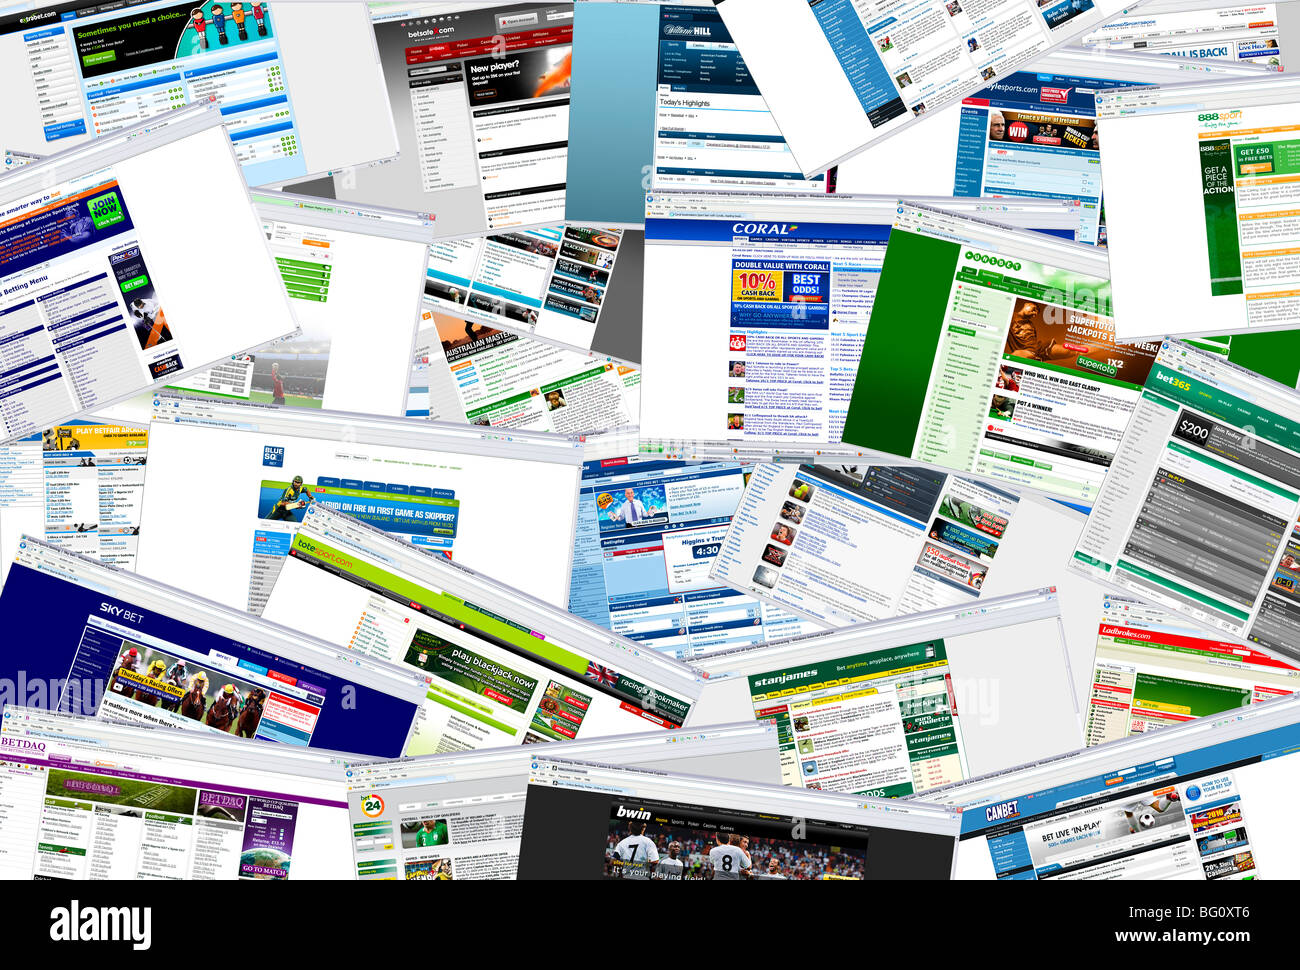 Sports betting websites - Stock Image